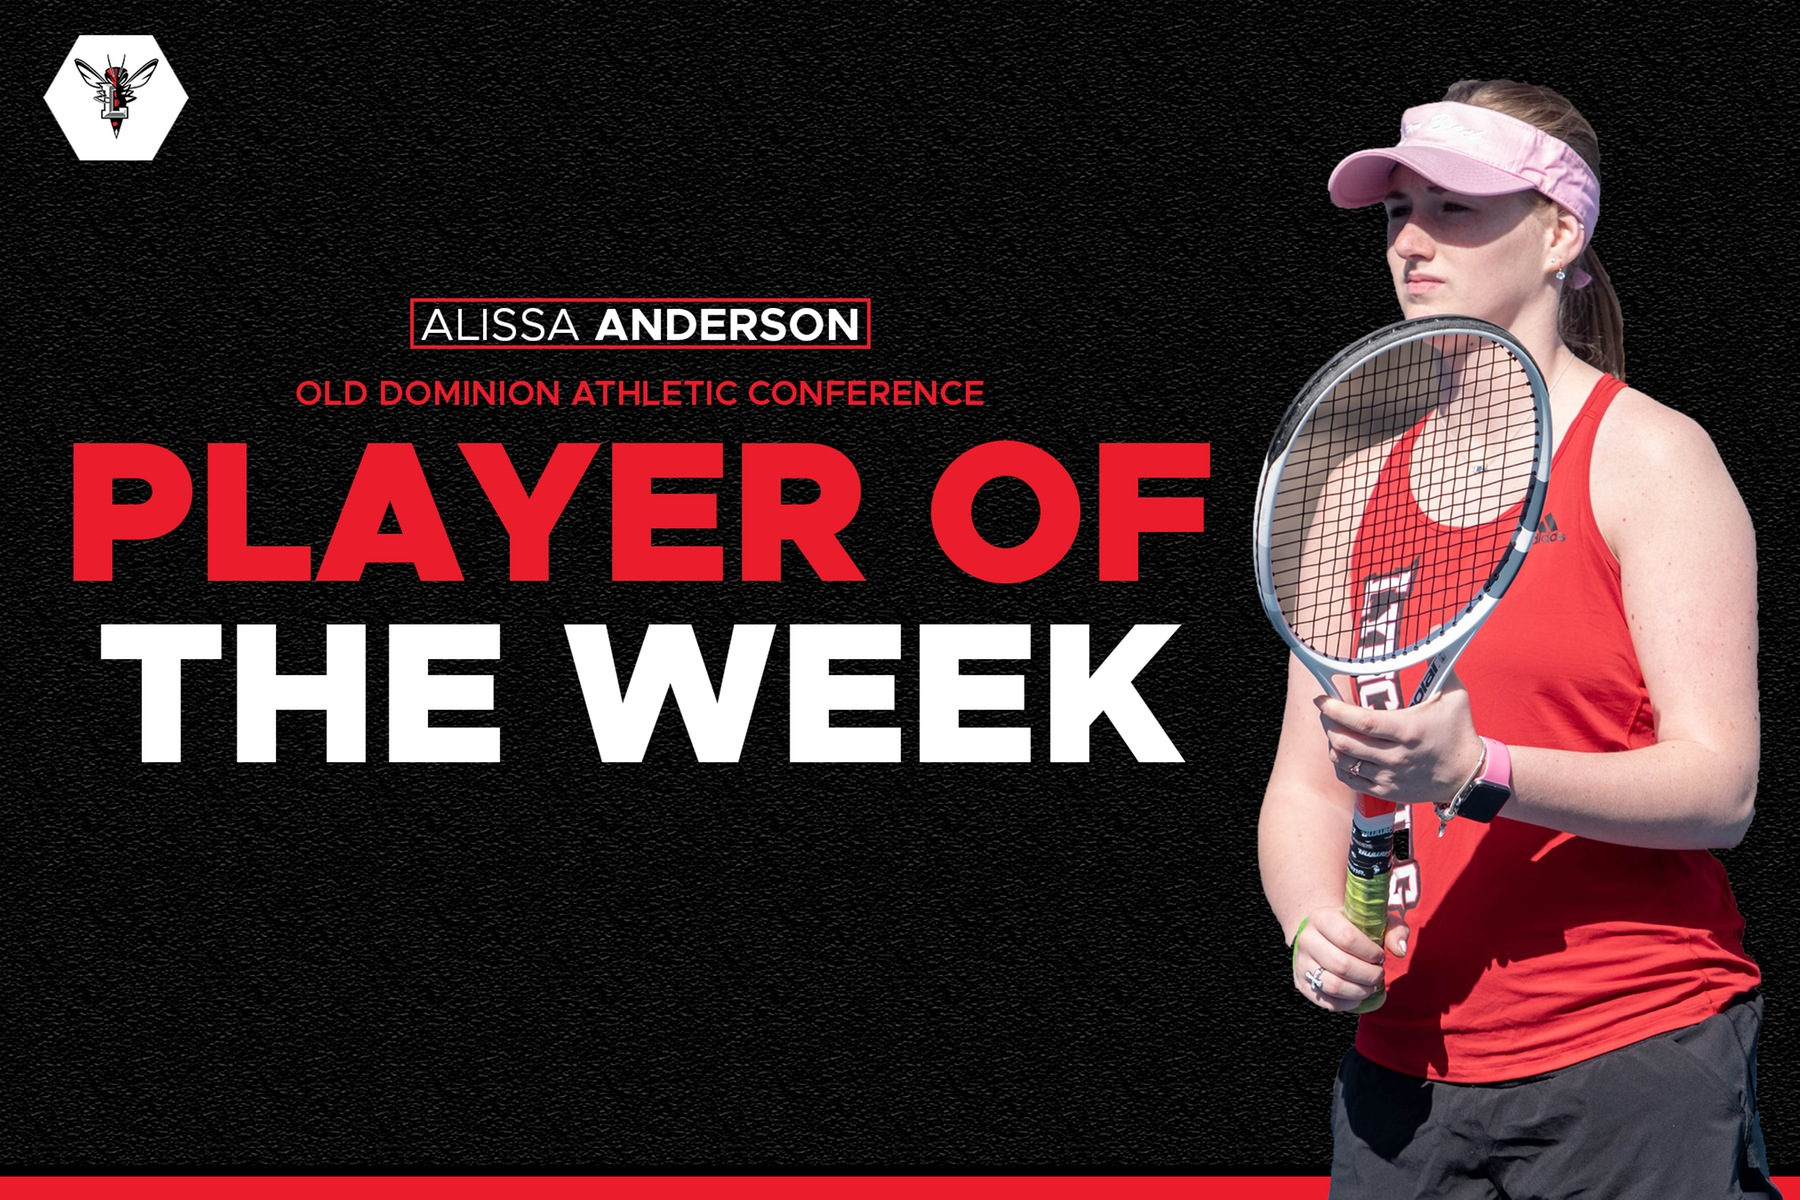 Alissa Anderson player of the week graphic